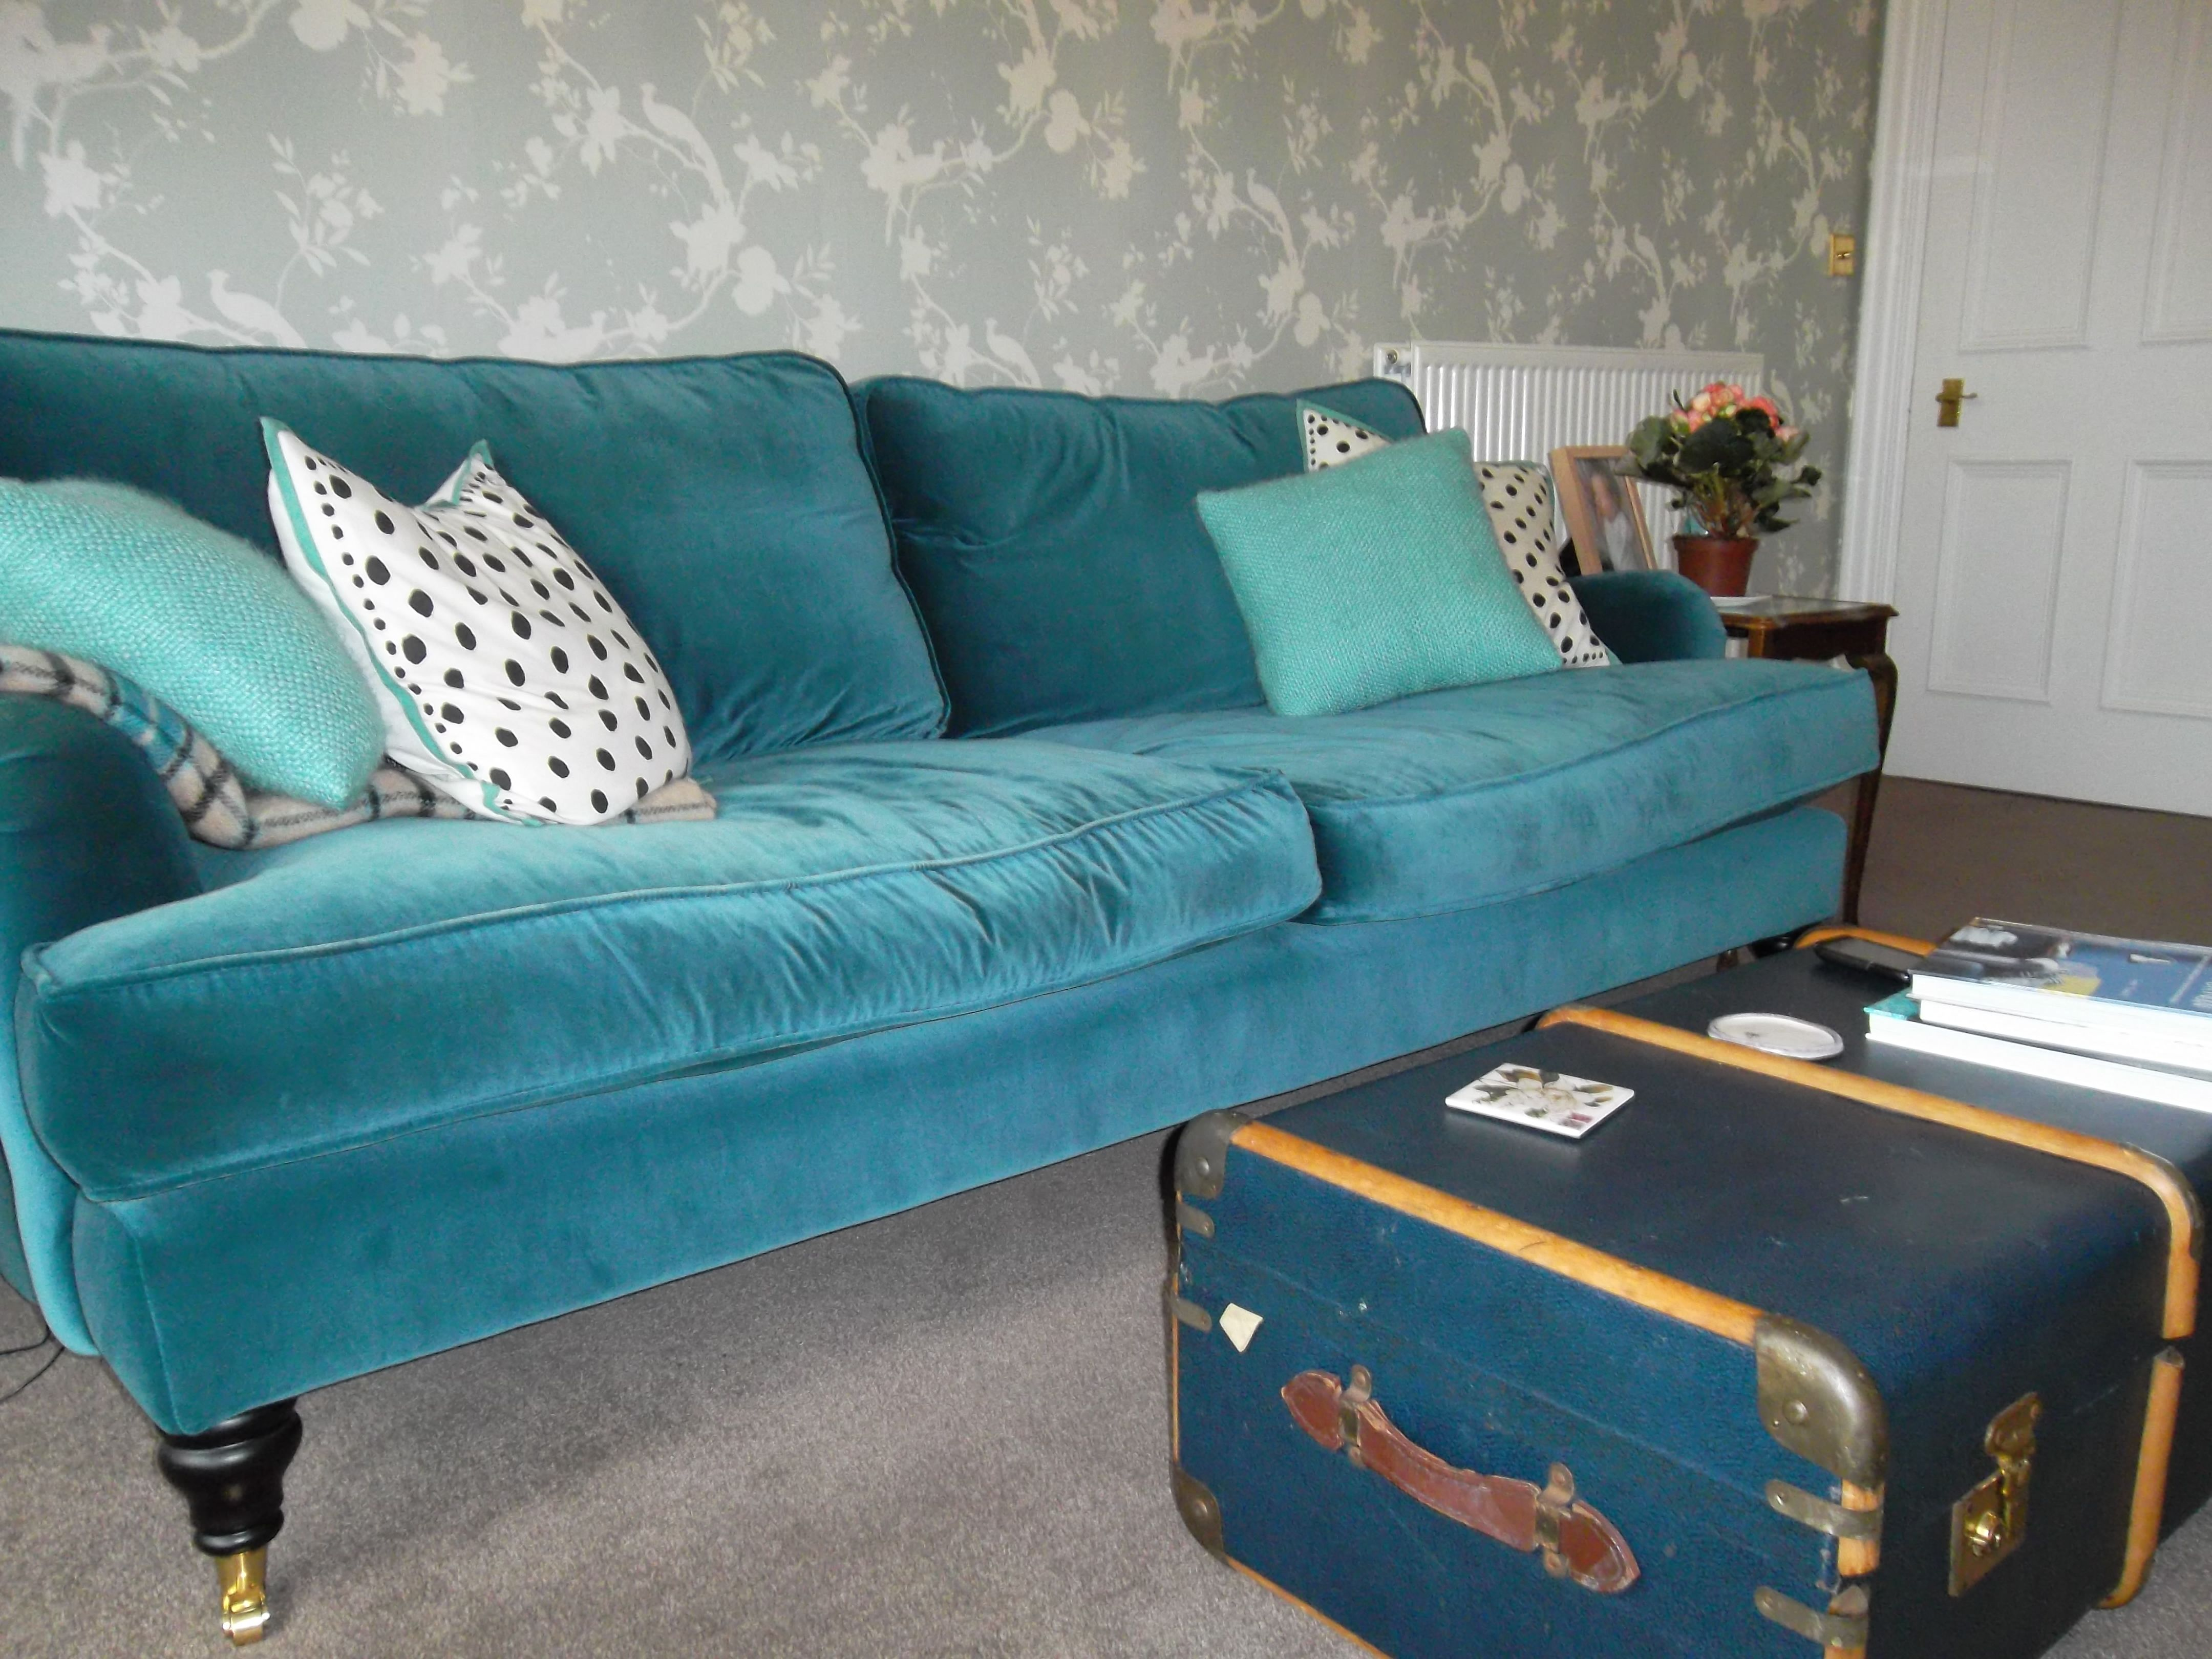 Bluebell 3 seater velvet sofa in dark turquoise from sofa bluebell 3 seater velvet sofa in dark turquoise from sofa with vintage trunk trunk coffee tablesvintage geotapseo Choice Image